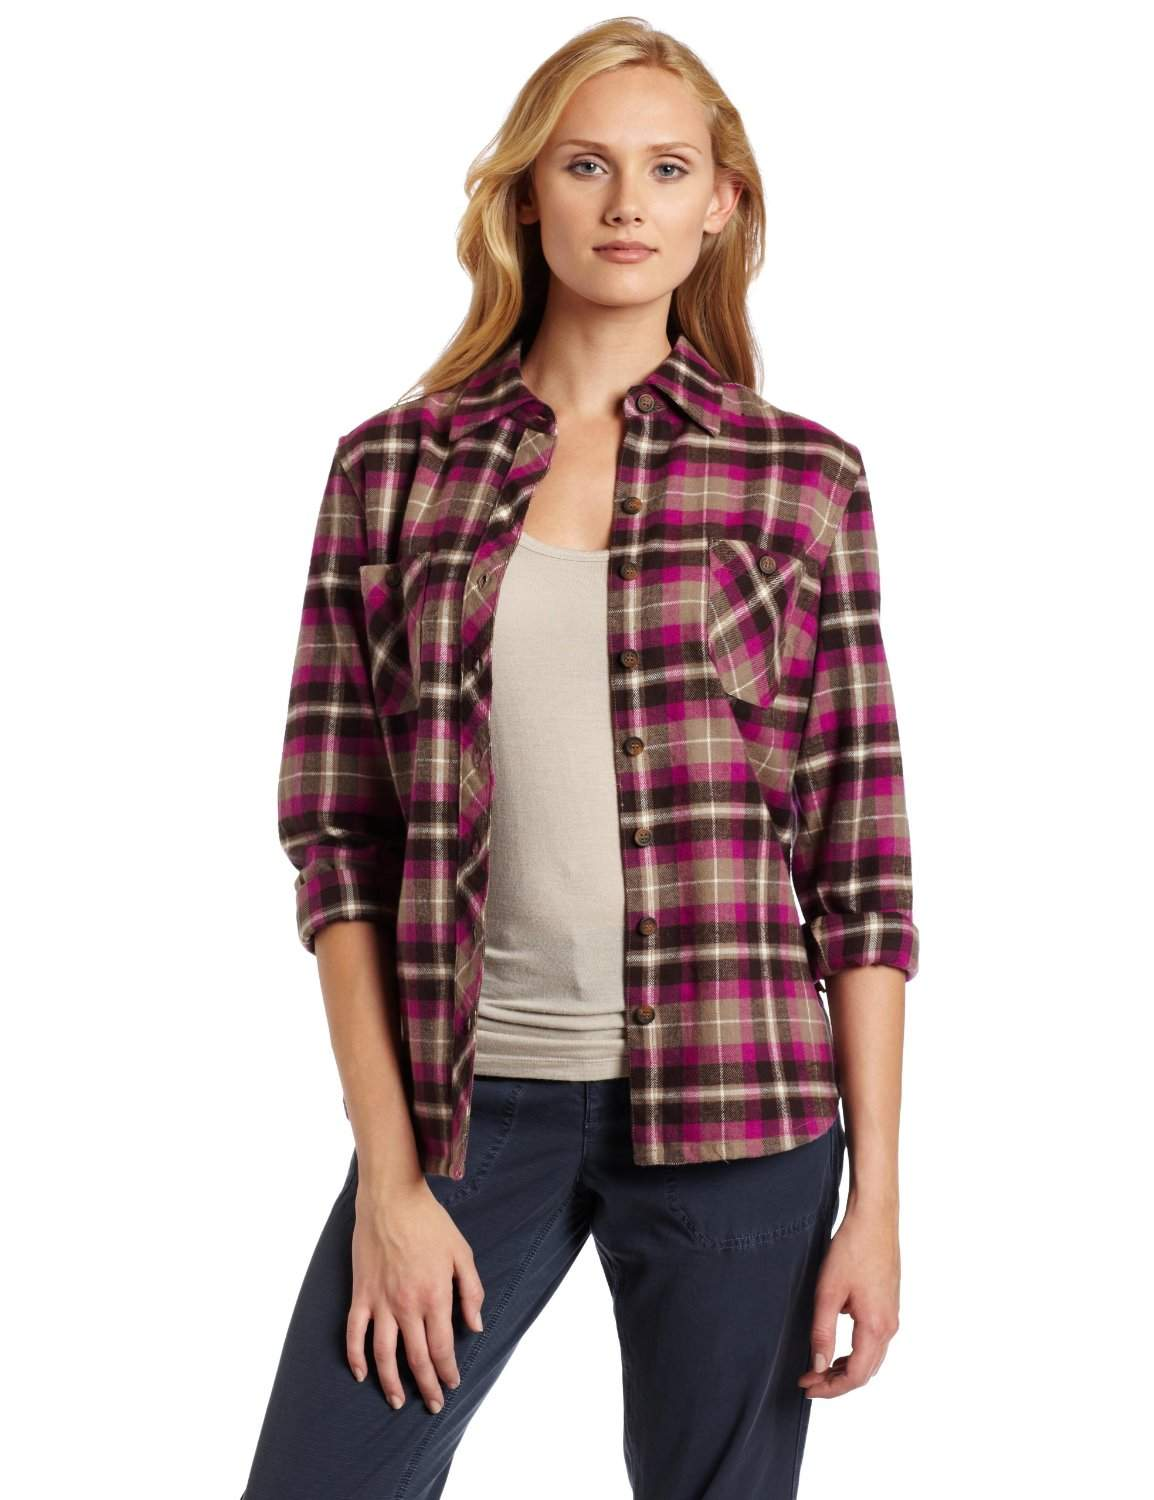 Shop for and buy womens plaid shirts online at Macy's. Find womens plaid shirts at Macy's.